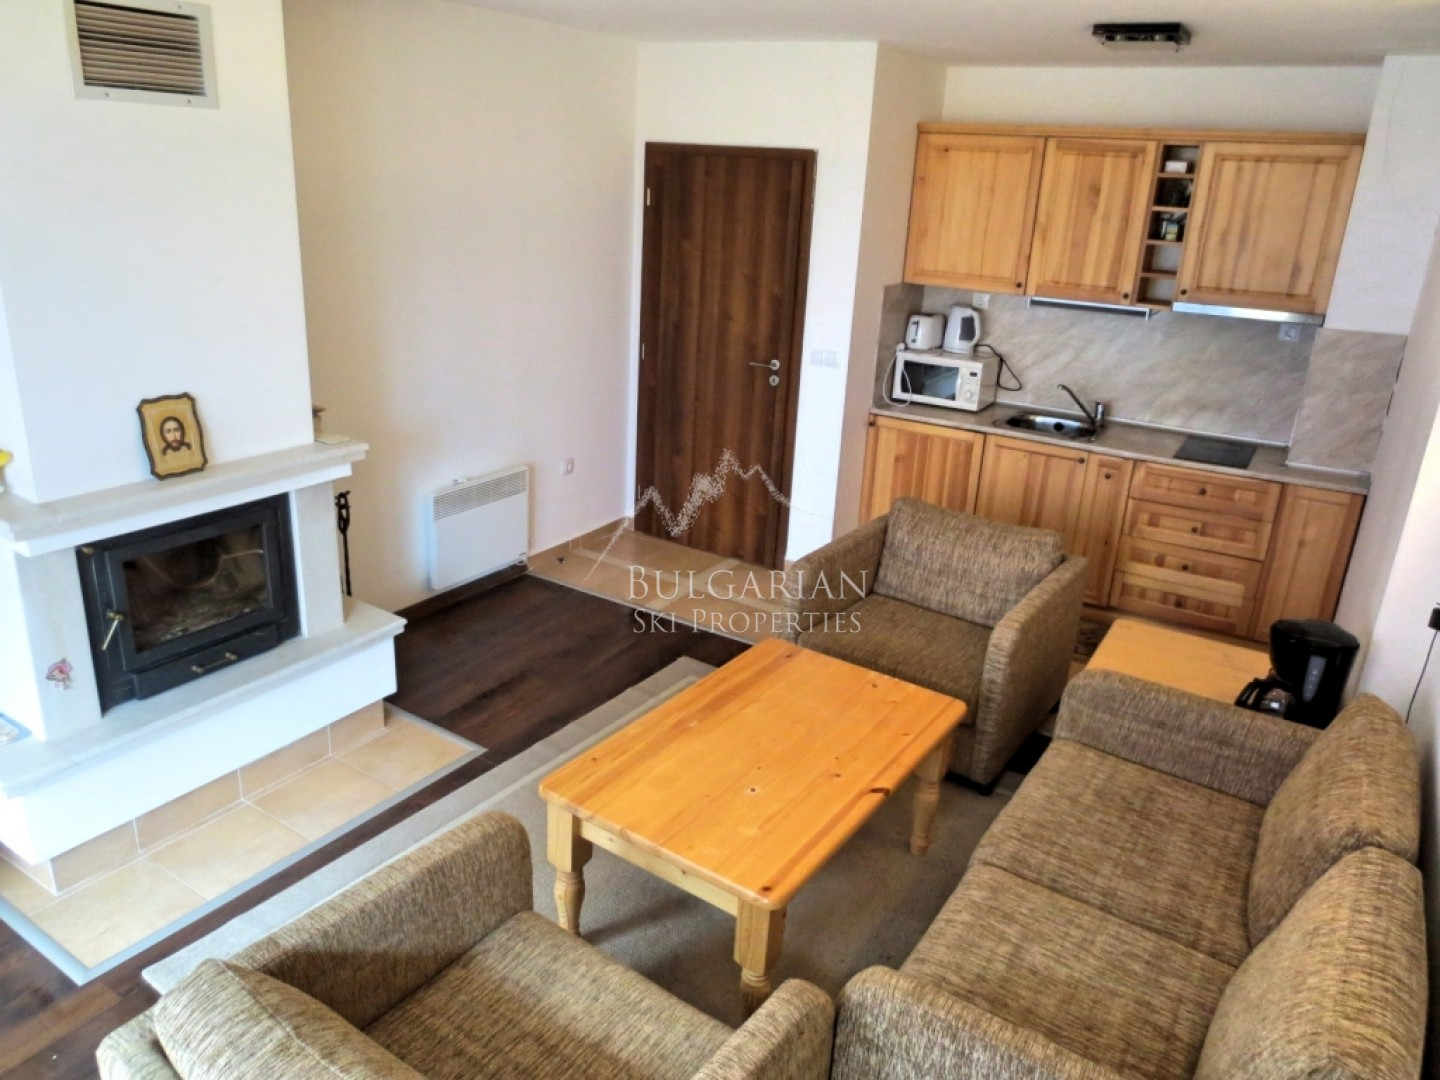 Bansko: furnished two bedroom apartment with fireplace in Winslow Infinity & SPA complex